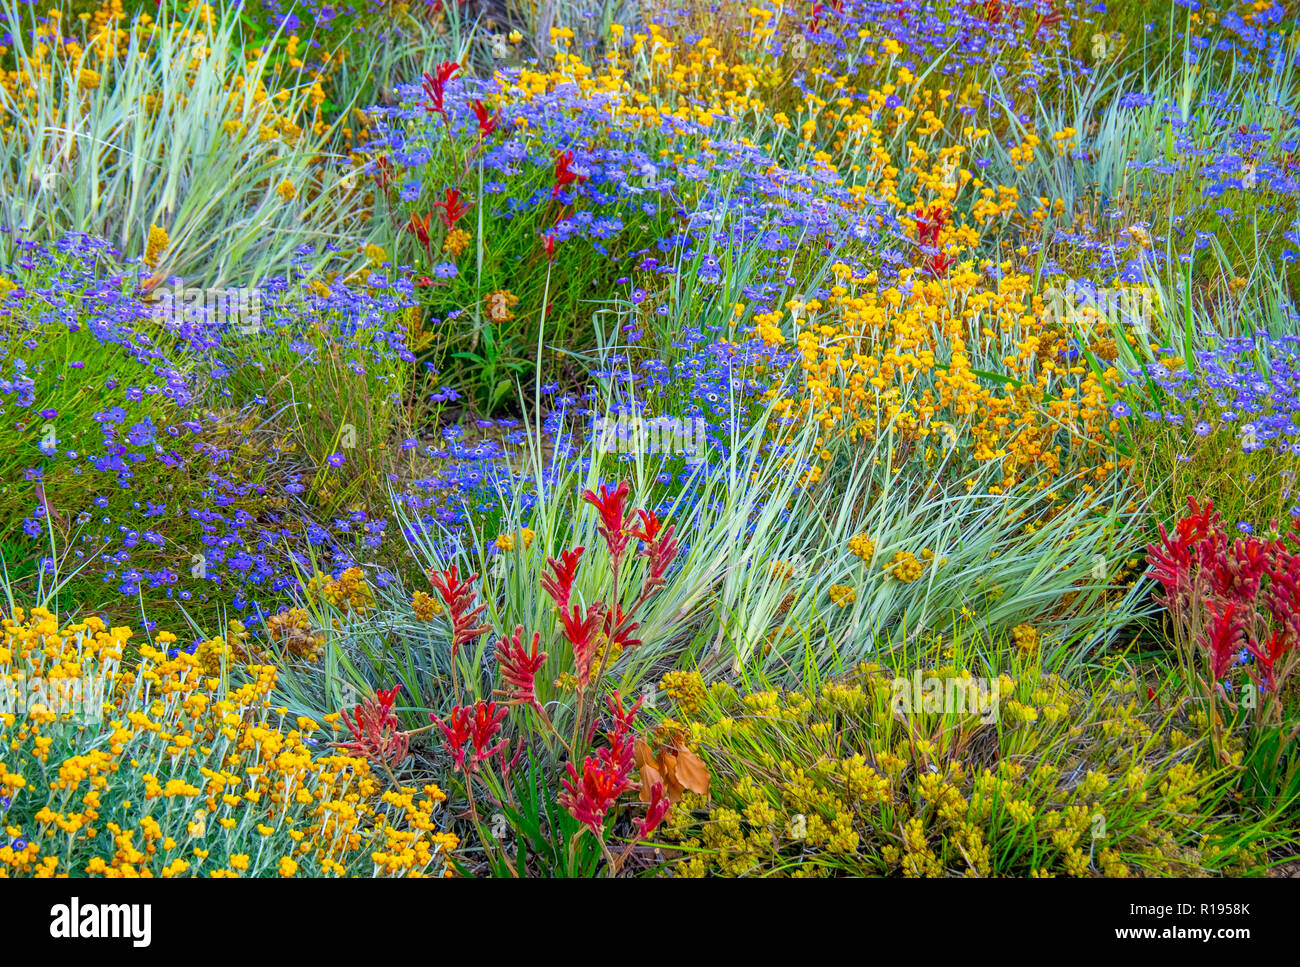 flowering-wildflowers-on-display-in-kings-park-botanical-gardens-perth-western-australia-R1958K.jpg